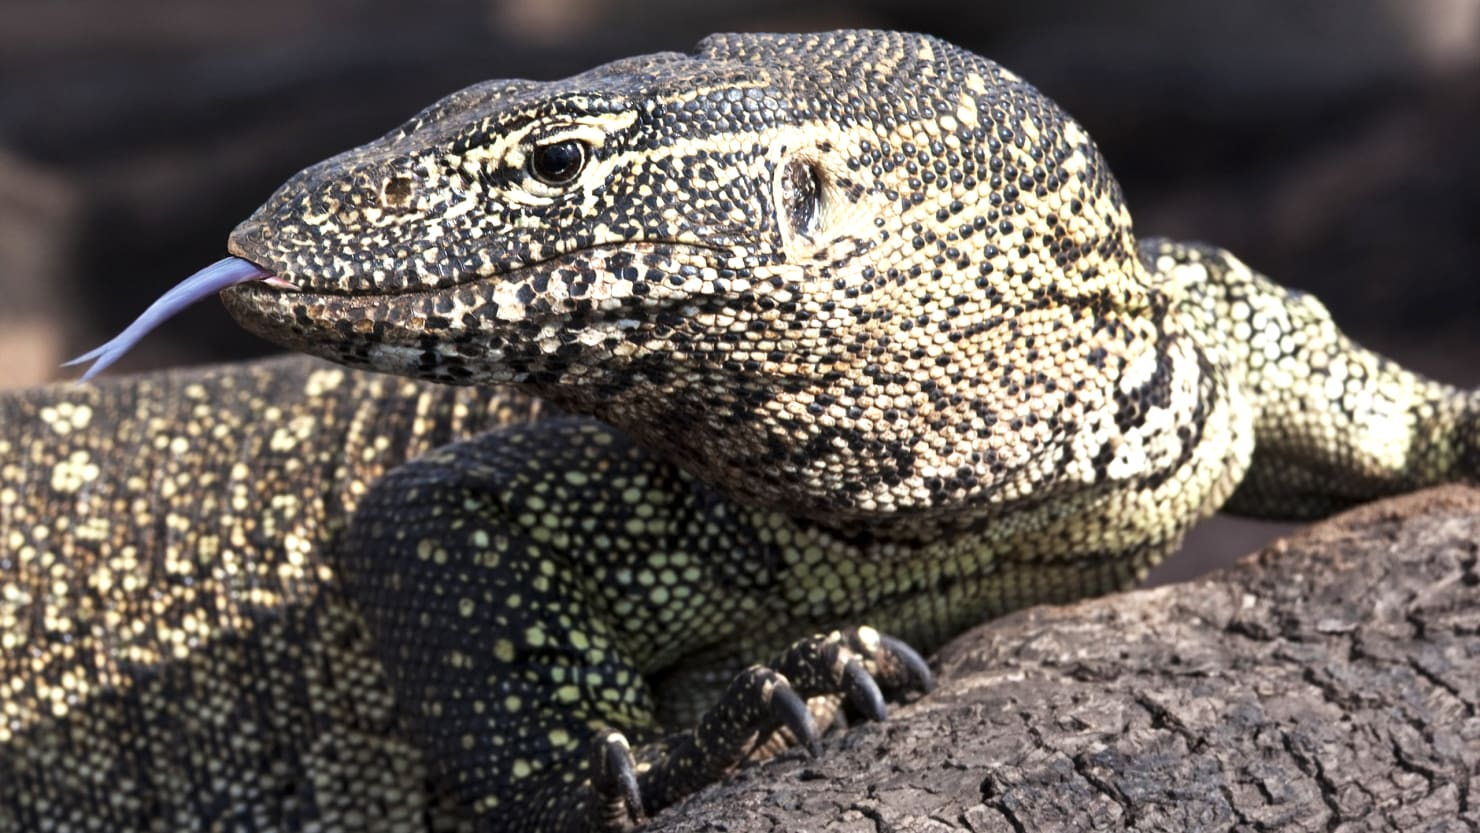 A Six Foot Lizard Is Terrorizing A Florida Family